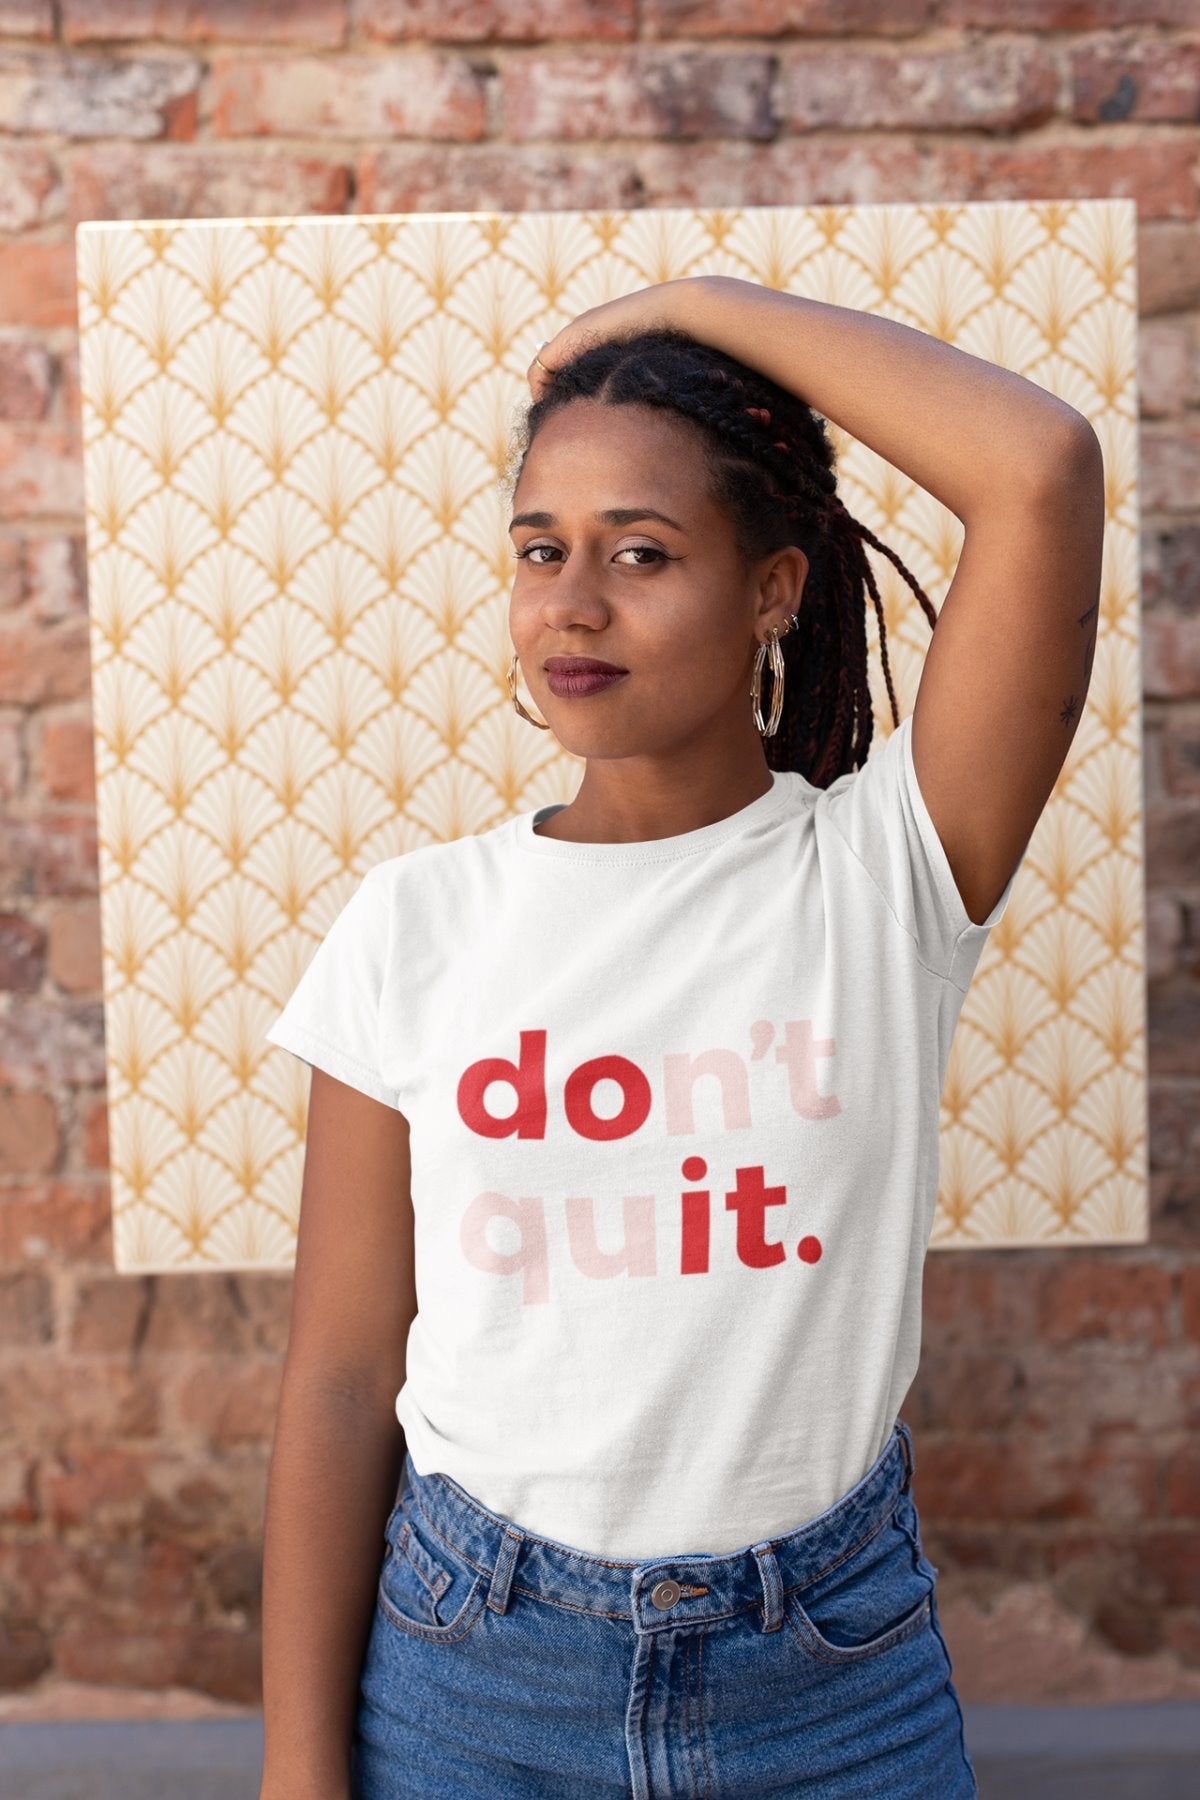 Don't Quit (Do It) - Unisex Shirt